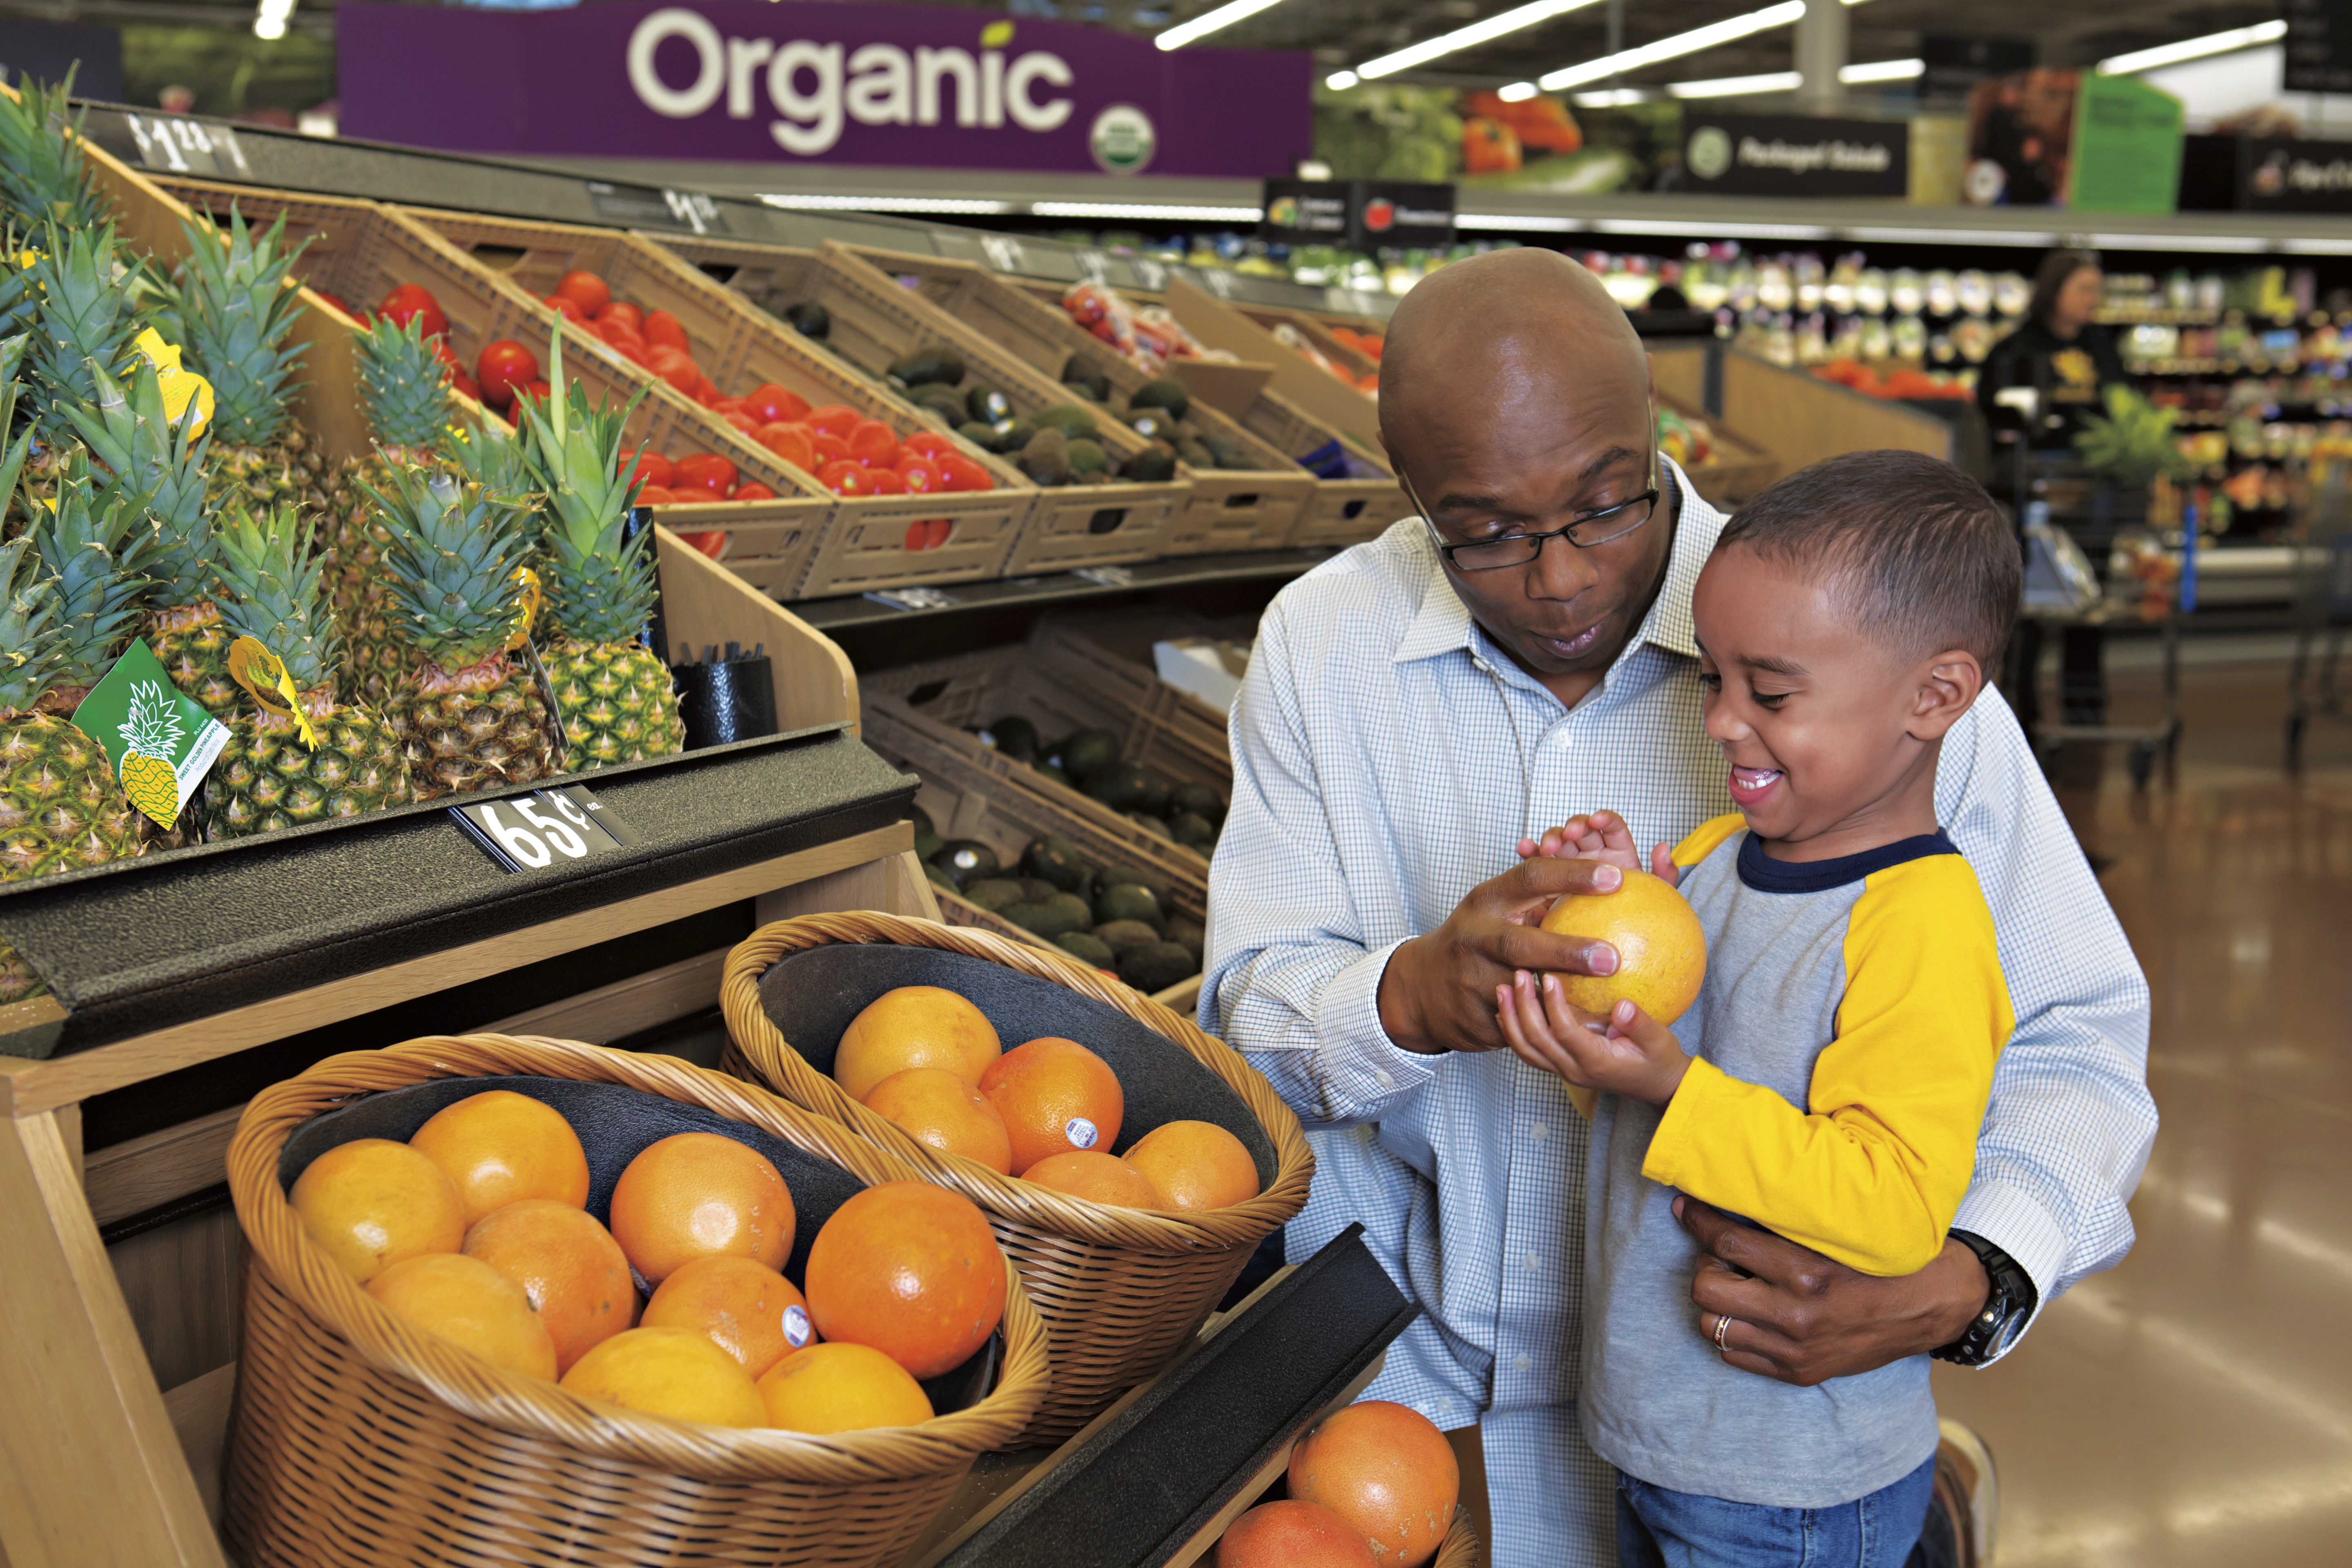 Father and son shopping in the produce section